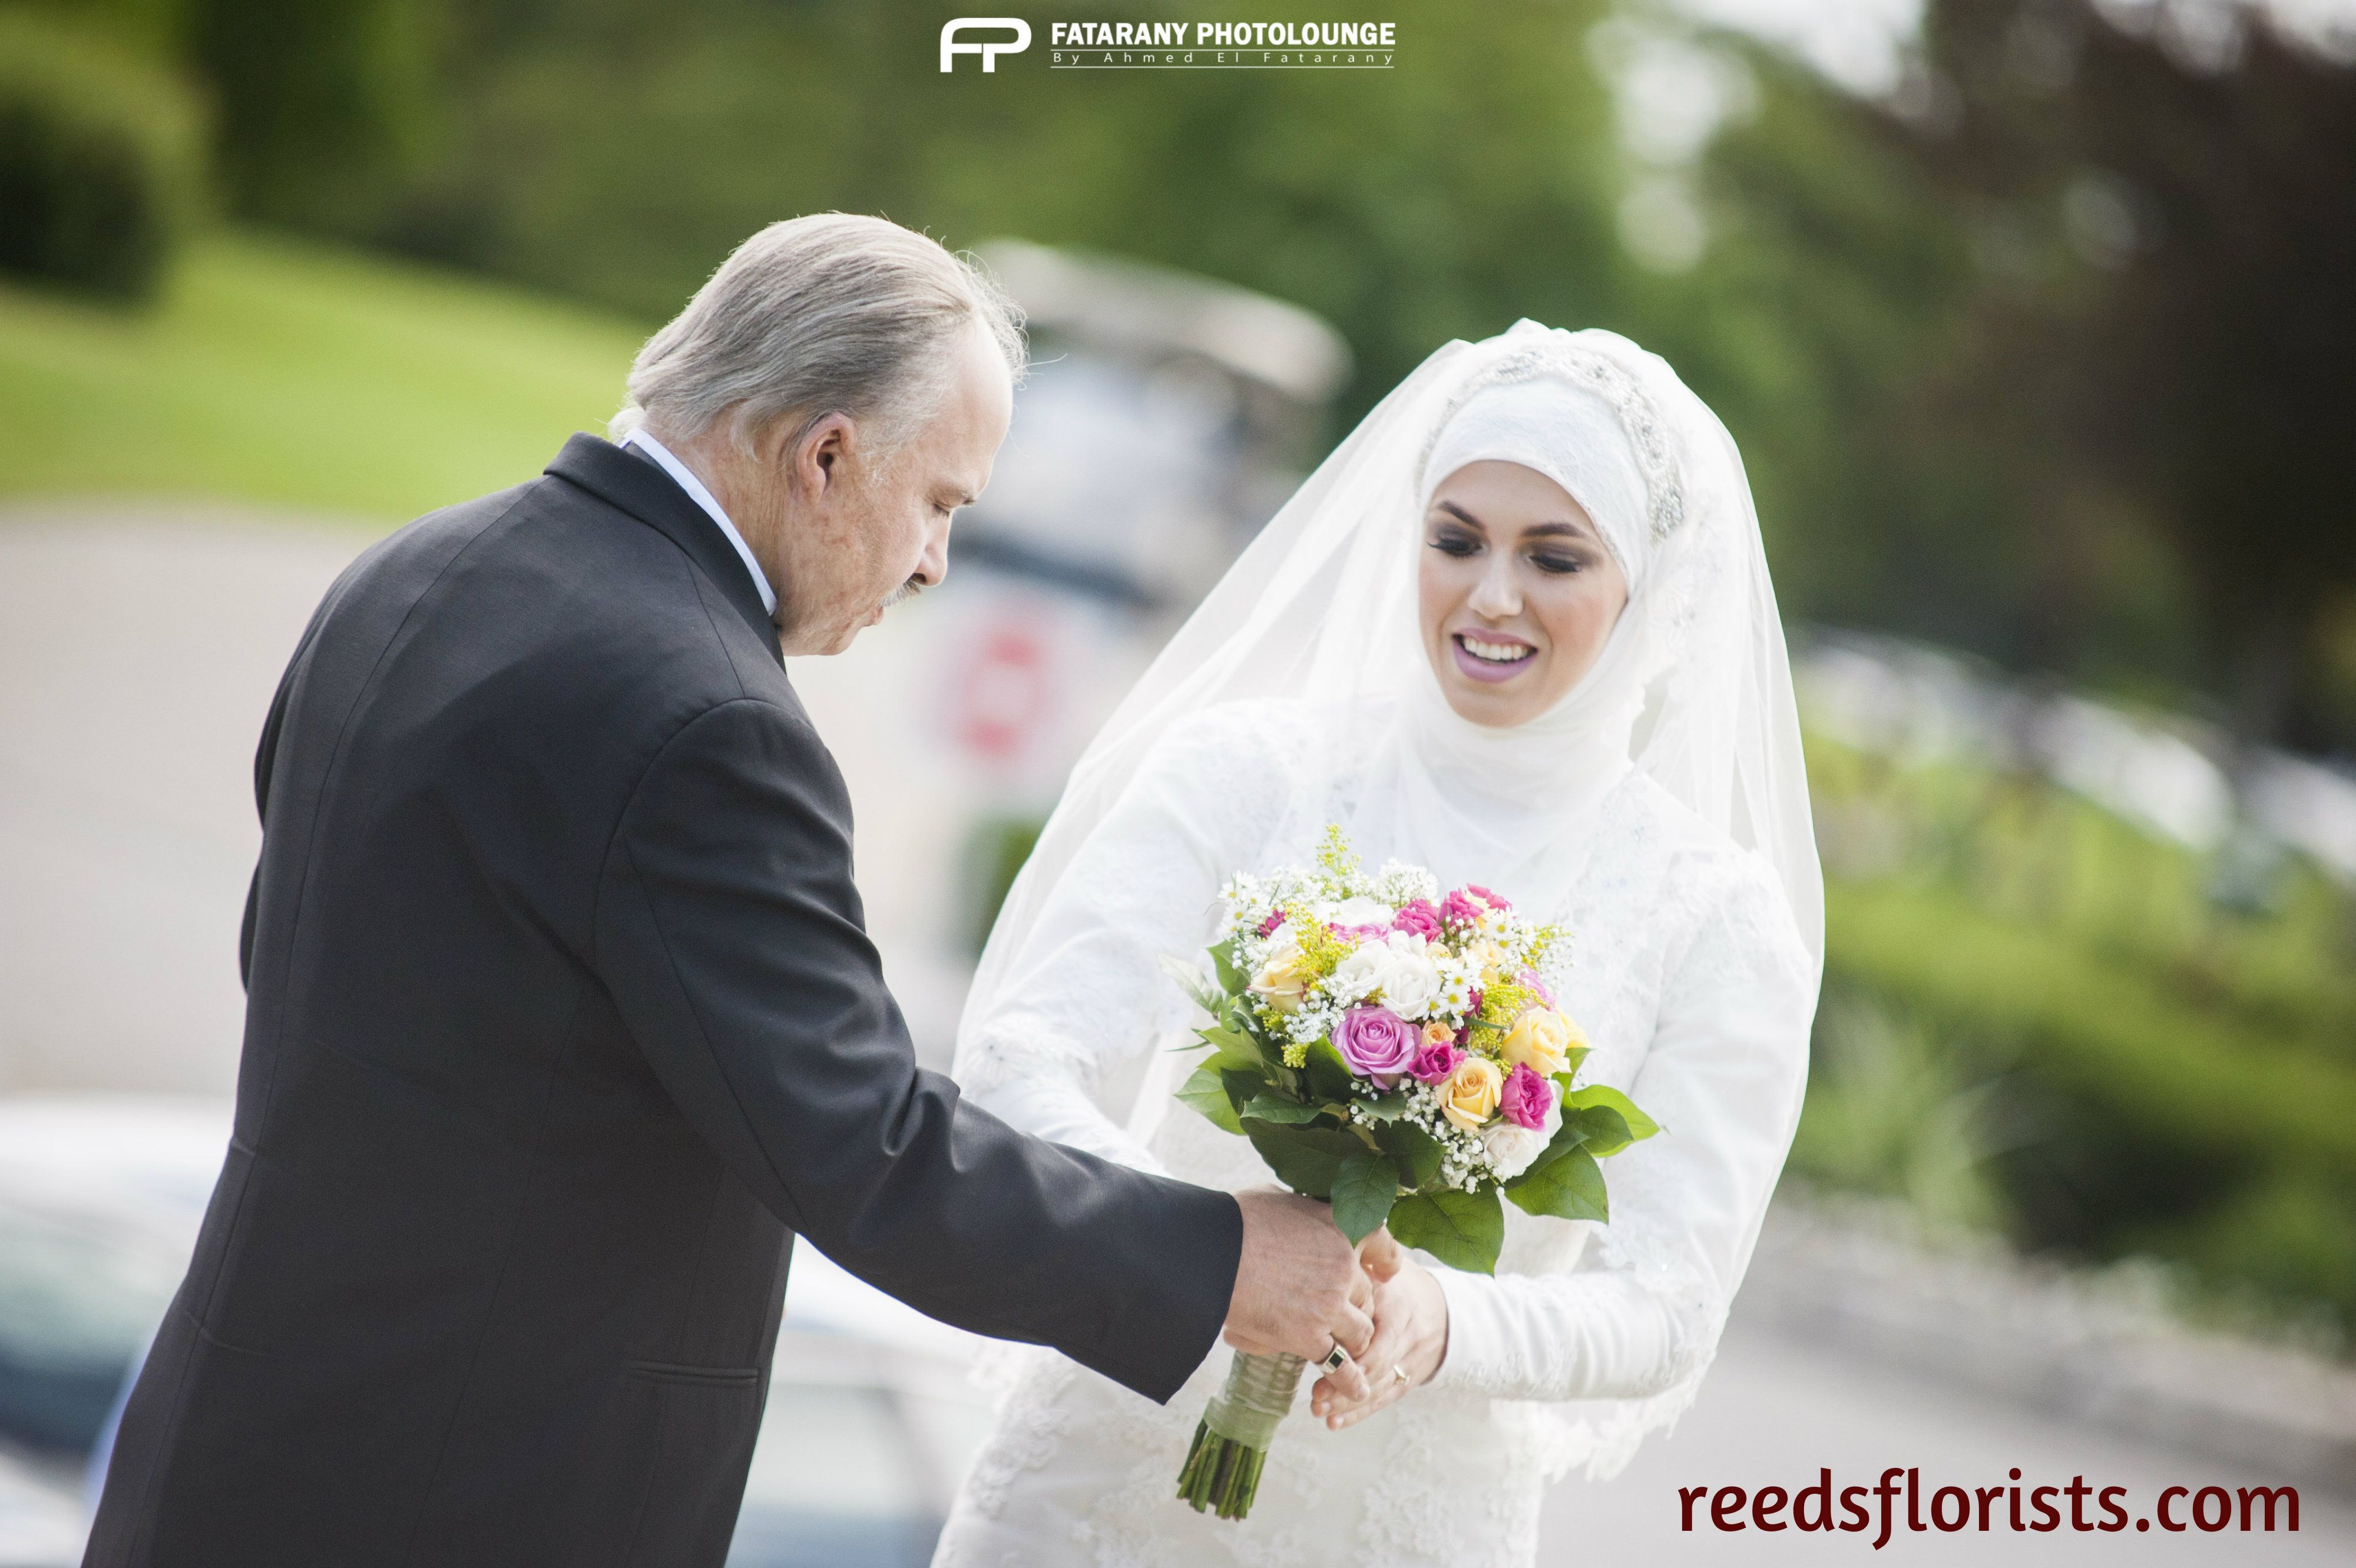 Dad hands his beautiful daughter her pretty bouquet. Flowers by www.reedsflorists.com photography by Fatarany Photolounge